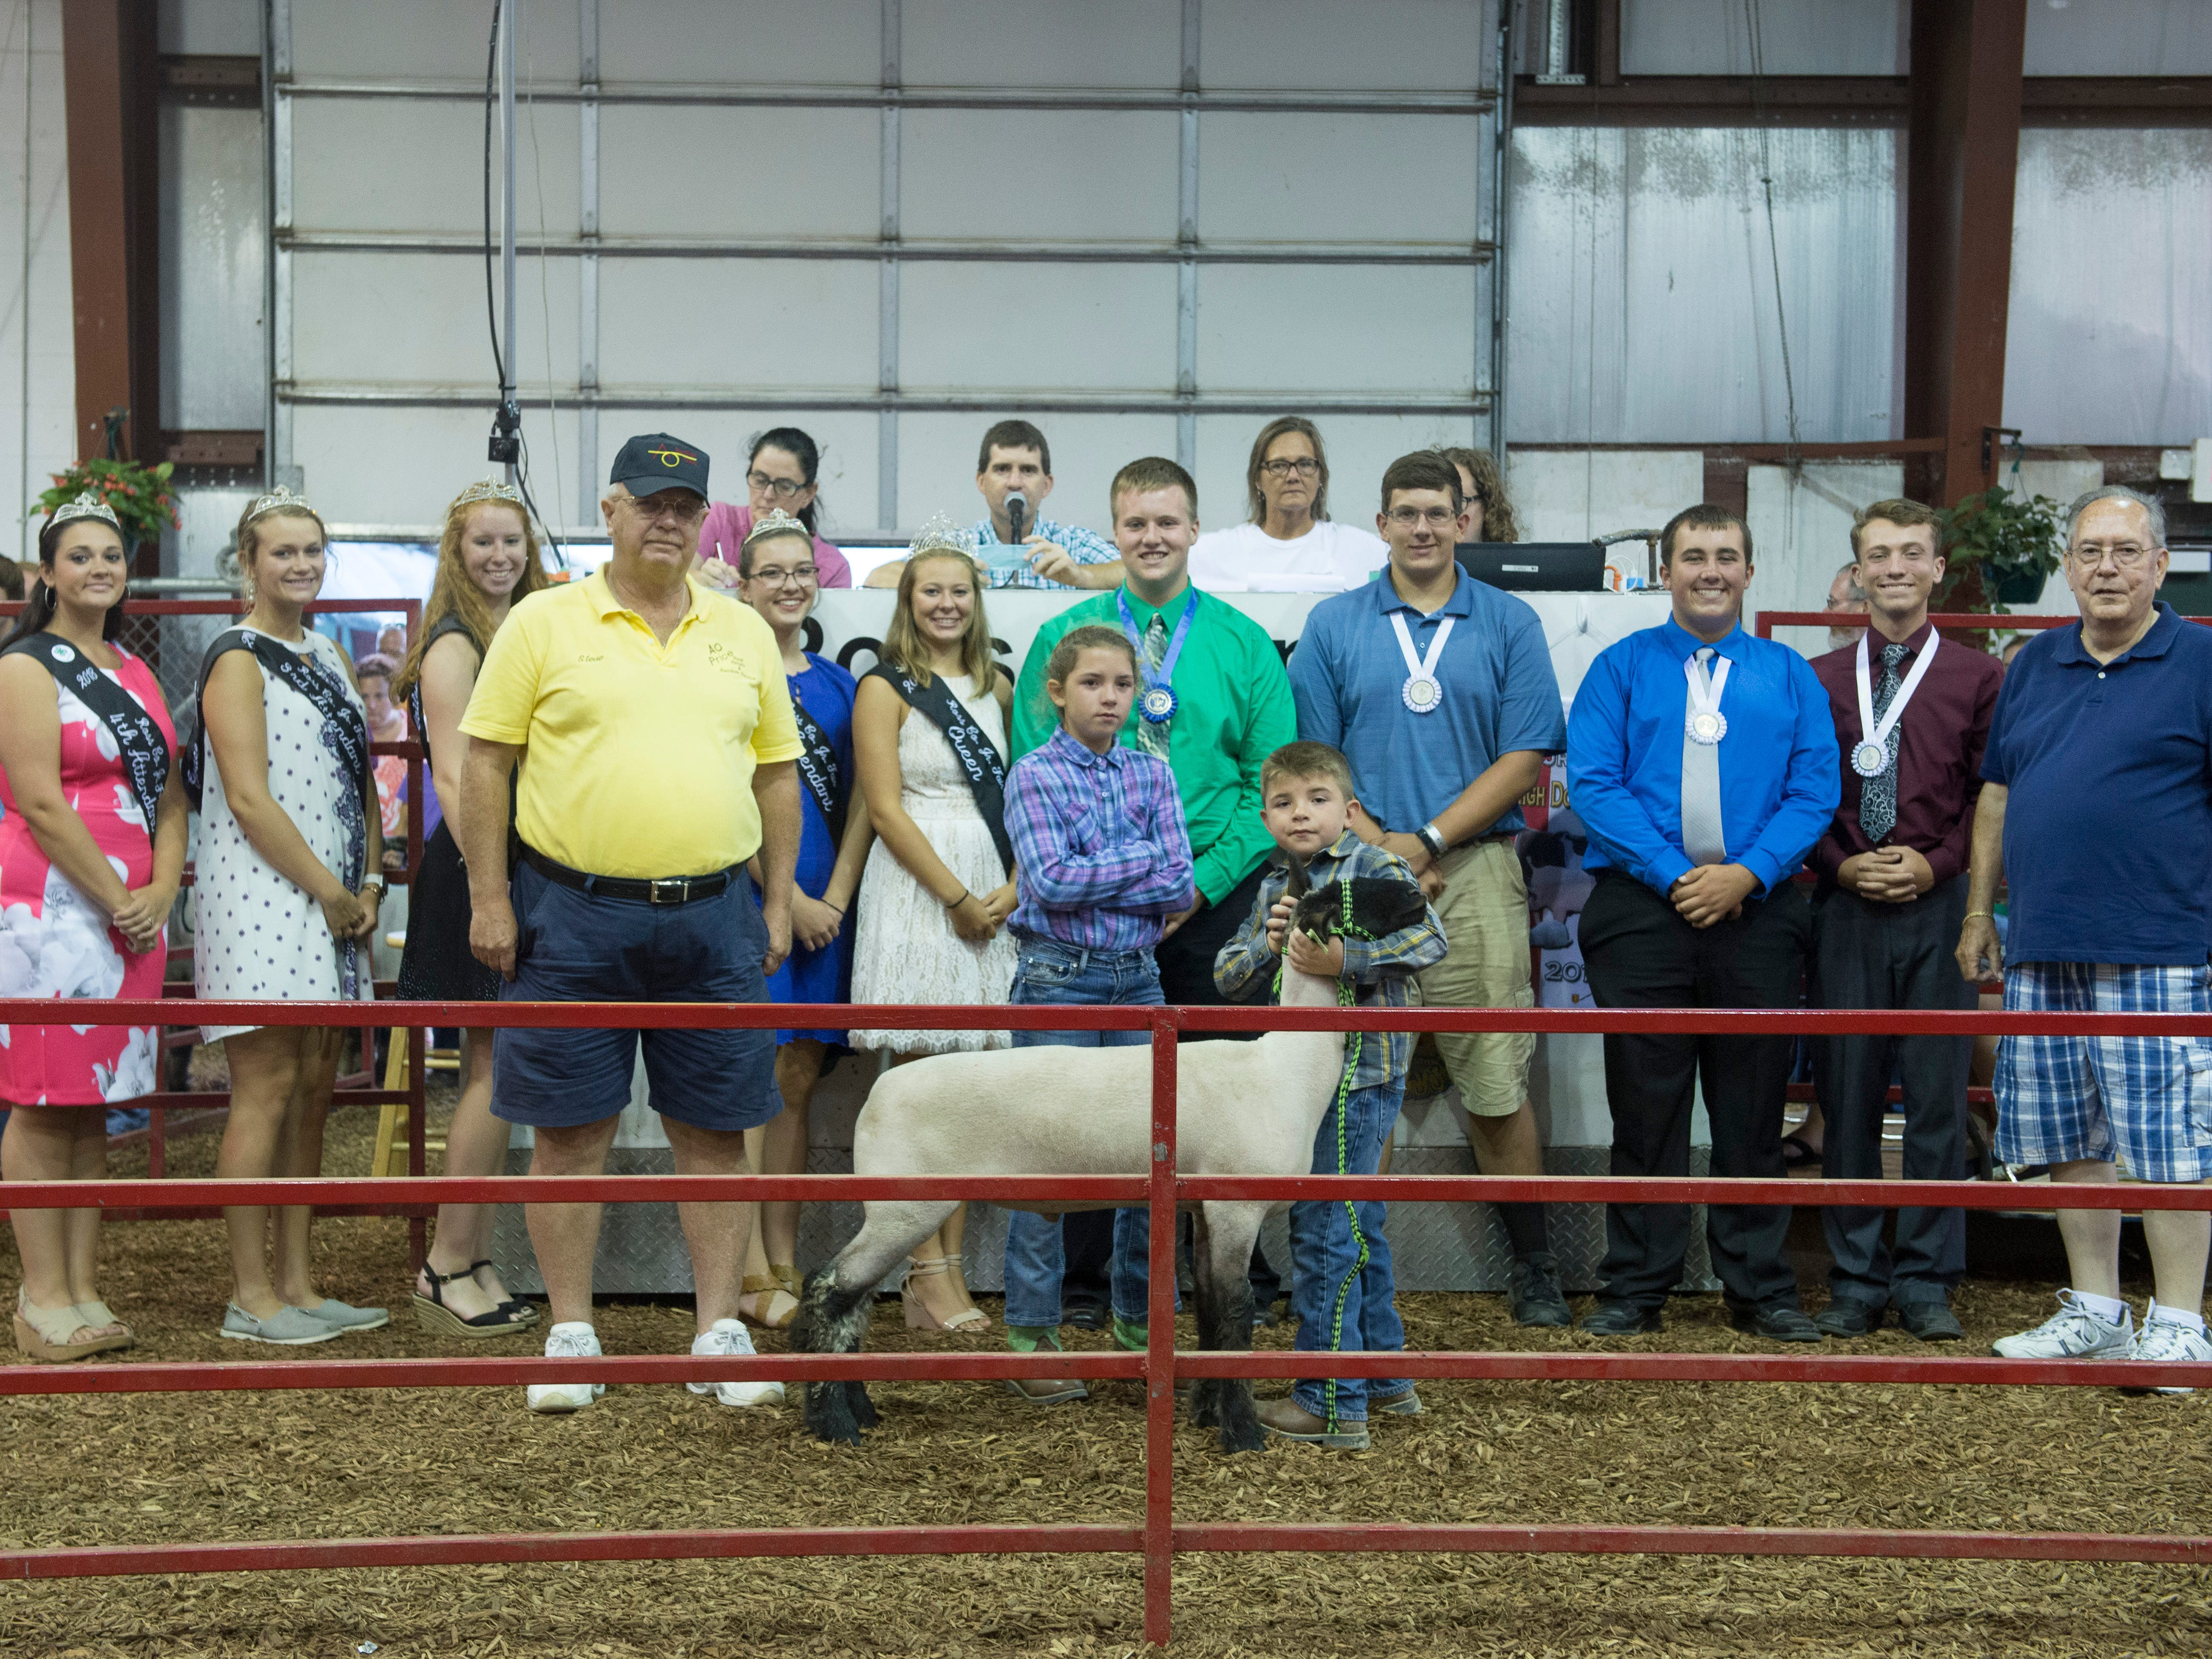 Jadyn and Jace Cantrell post with their endowment lamb after auction during the Jr. Fair Market Lamb Sale at the Ross County Fair on August 10, 2018, in Chillicothe, Ohio.